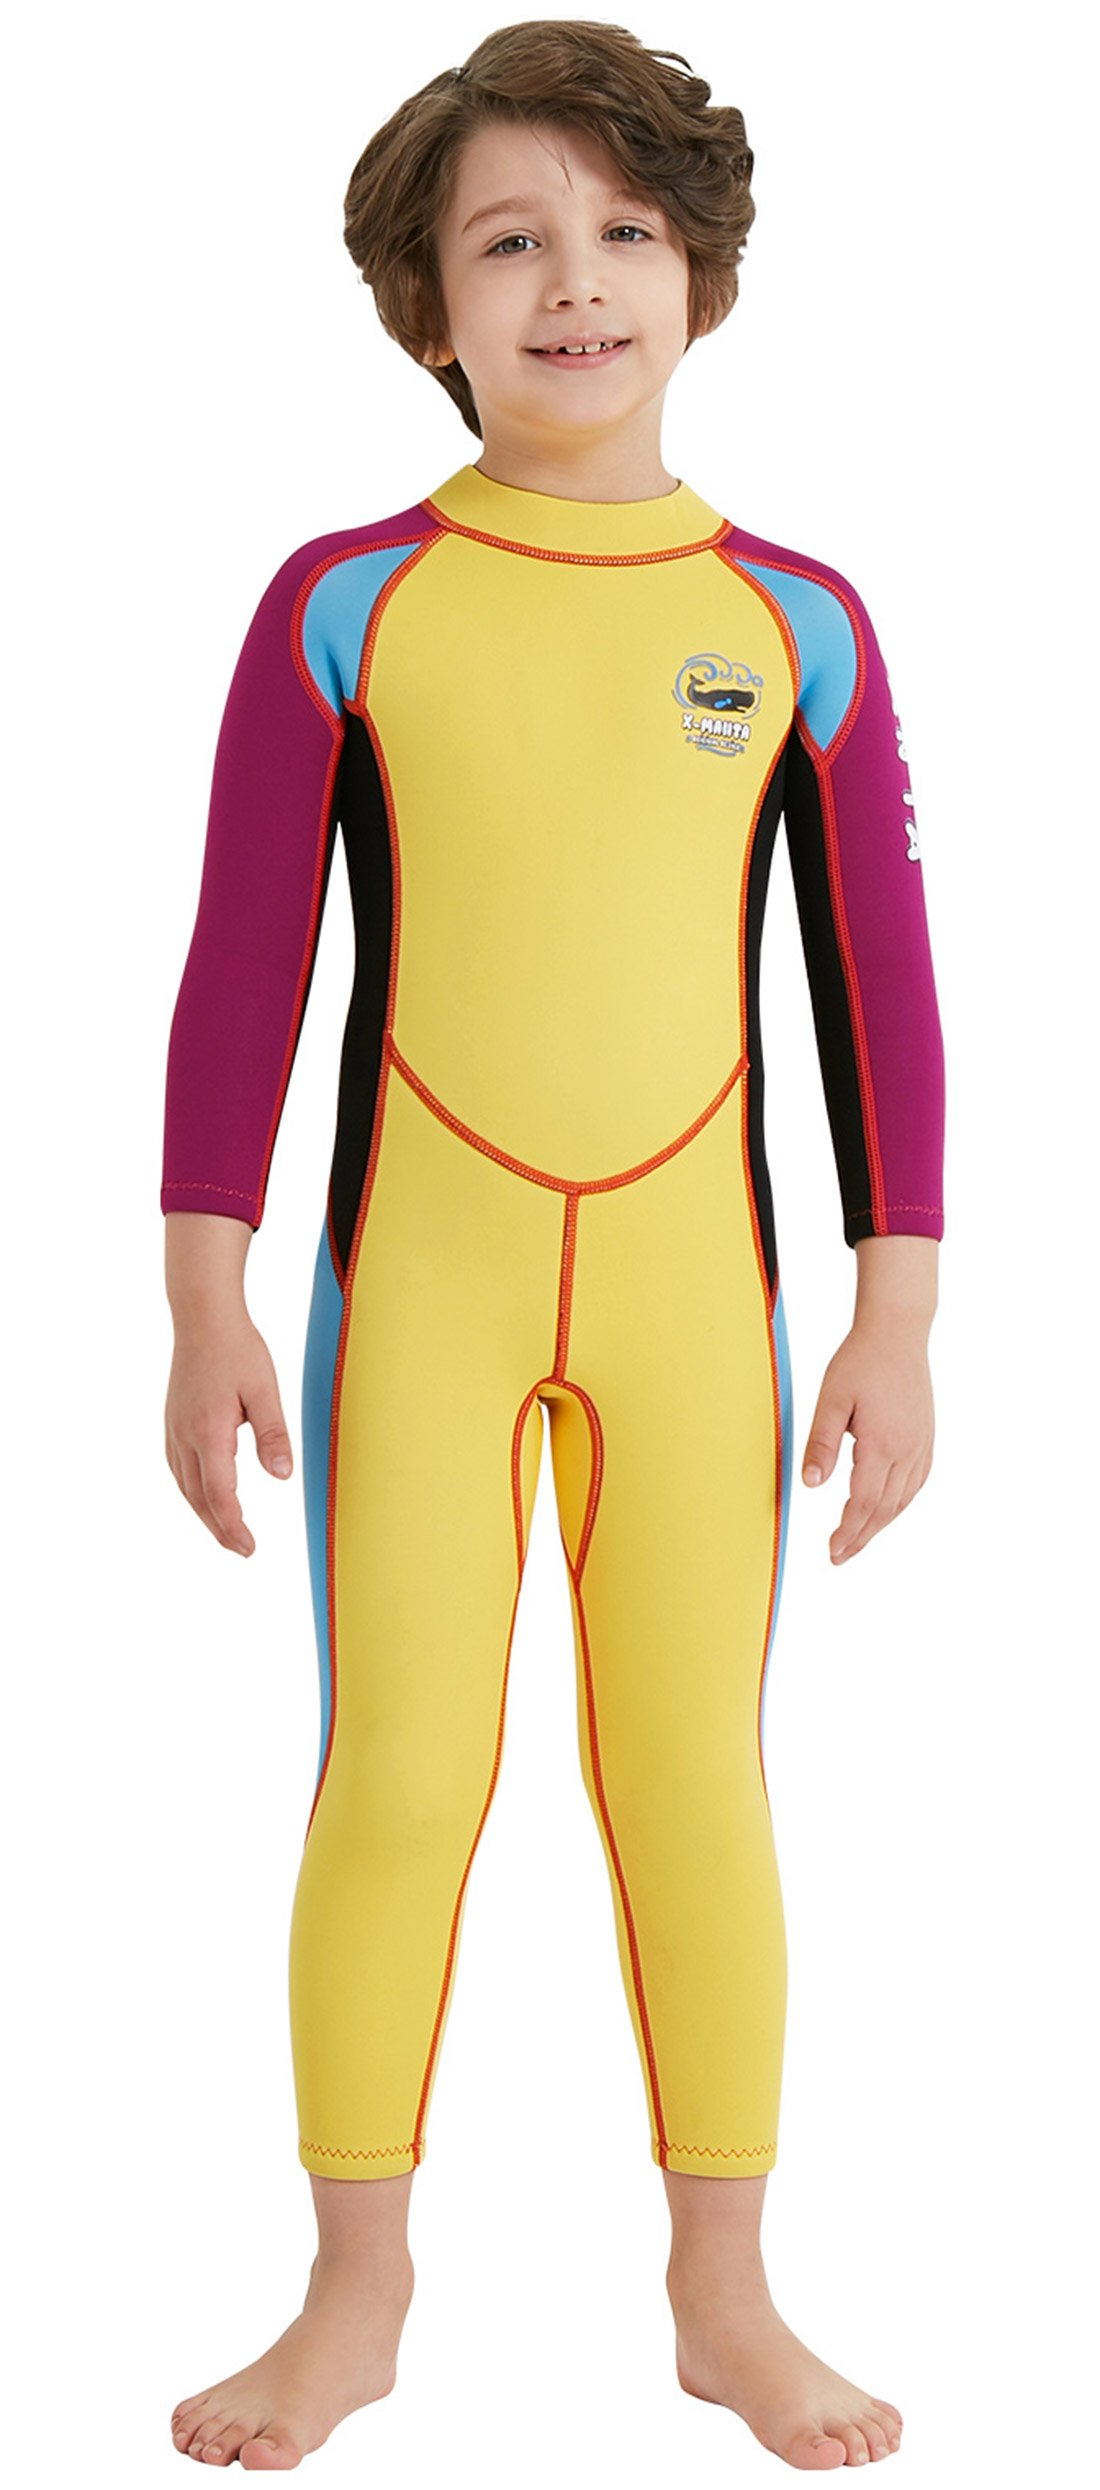 313b8c480fb DIVE   SAIL Kids Long Sleeve Full Suit Wetsuit Thermal Warm One Piece  Swimsuit Surfing Diving Suit Swimwear Yellow XL